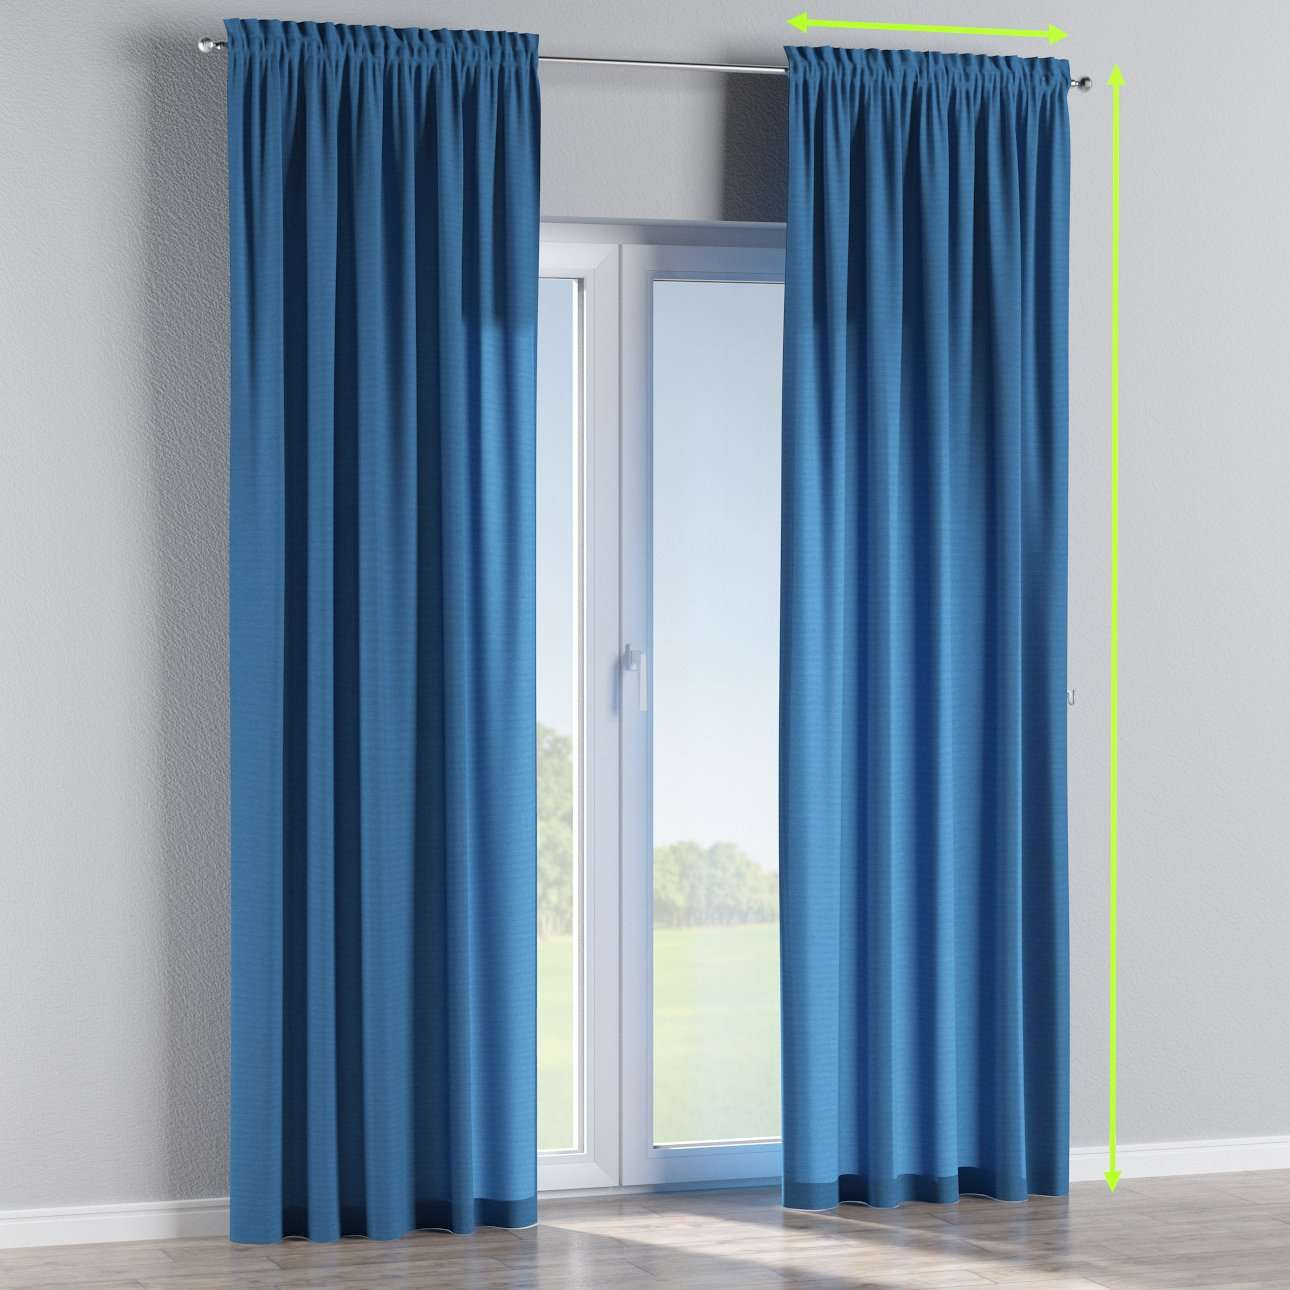 Slot and frill lined curtains in collection Jupiter, fabric: 127-61